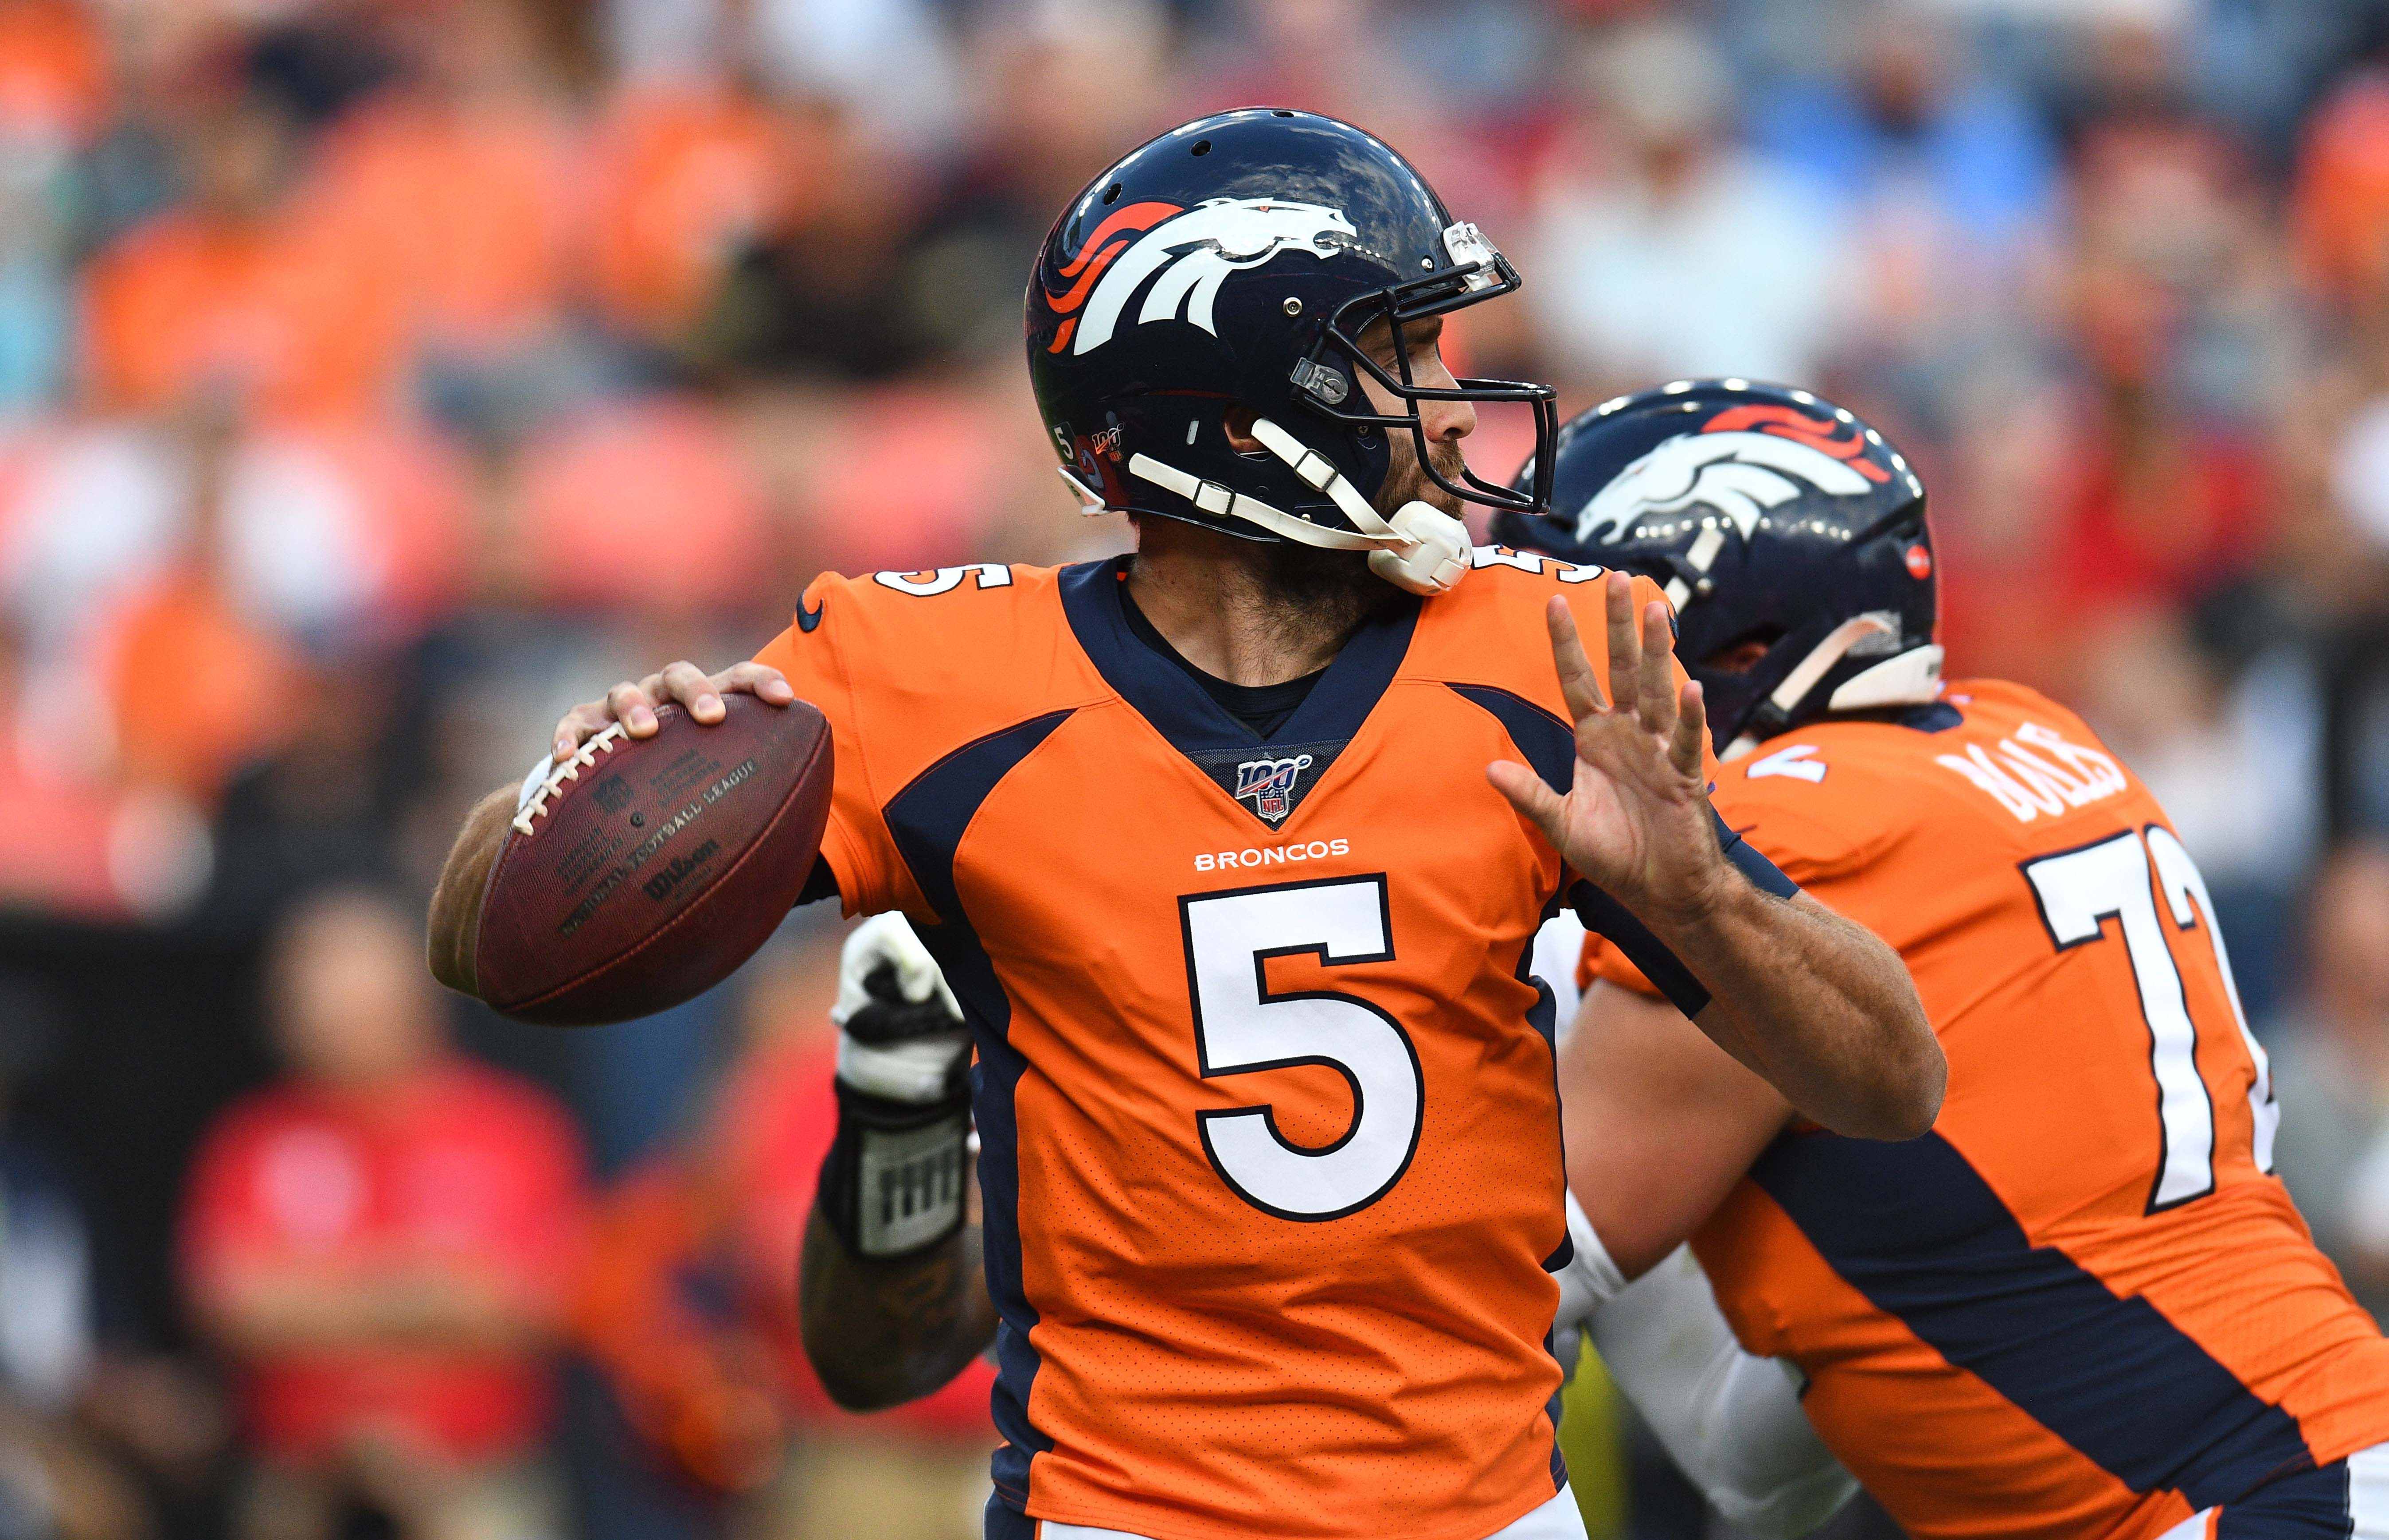 Denver Broncos vs. Oakland Raiders: Game time, live stream, TV channel, how to watch